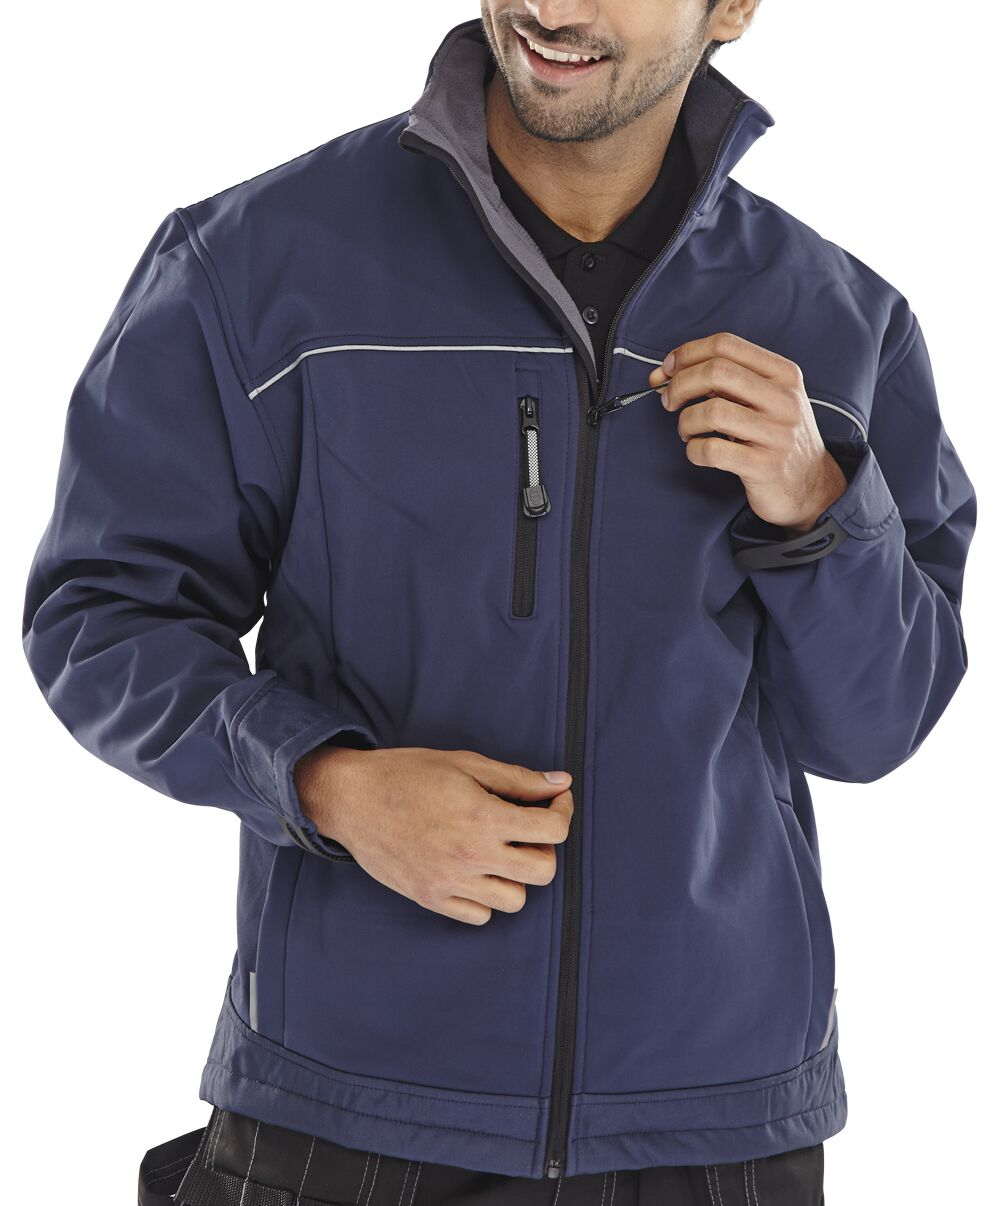 Soft Shell Click Workwear Soft Shell Jacket Water Resistant Windproof XL Navy Ref SSJNXL *Approx 3 Day Leadtime*